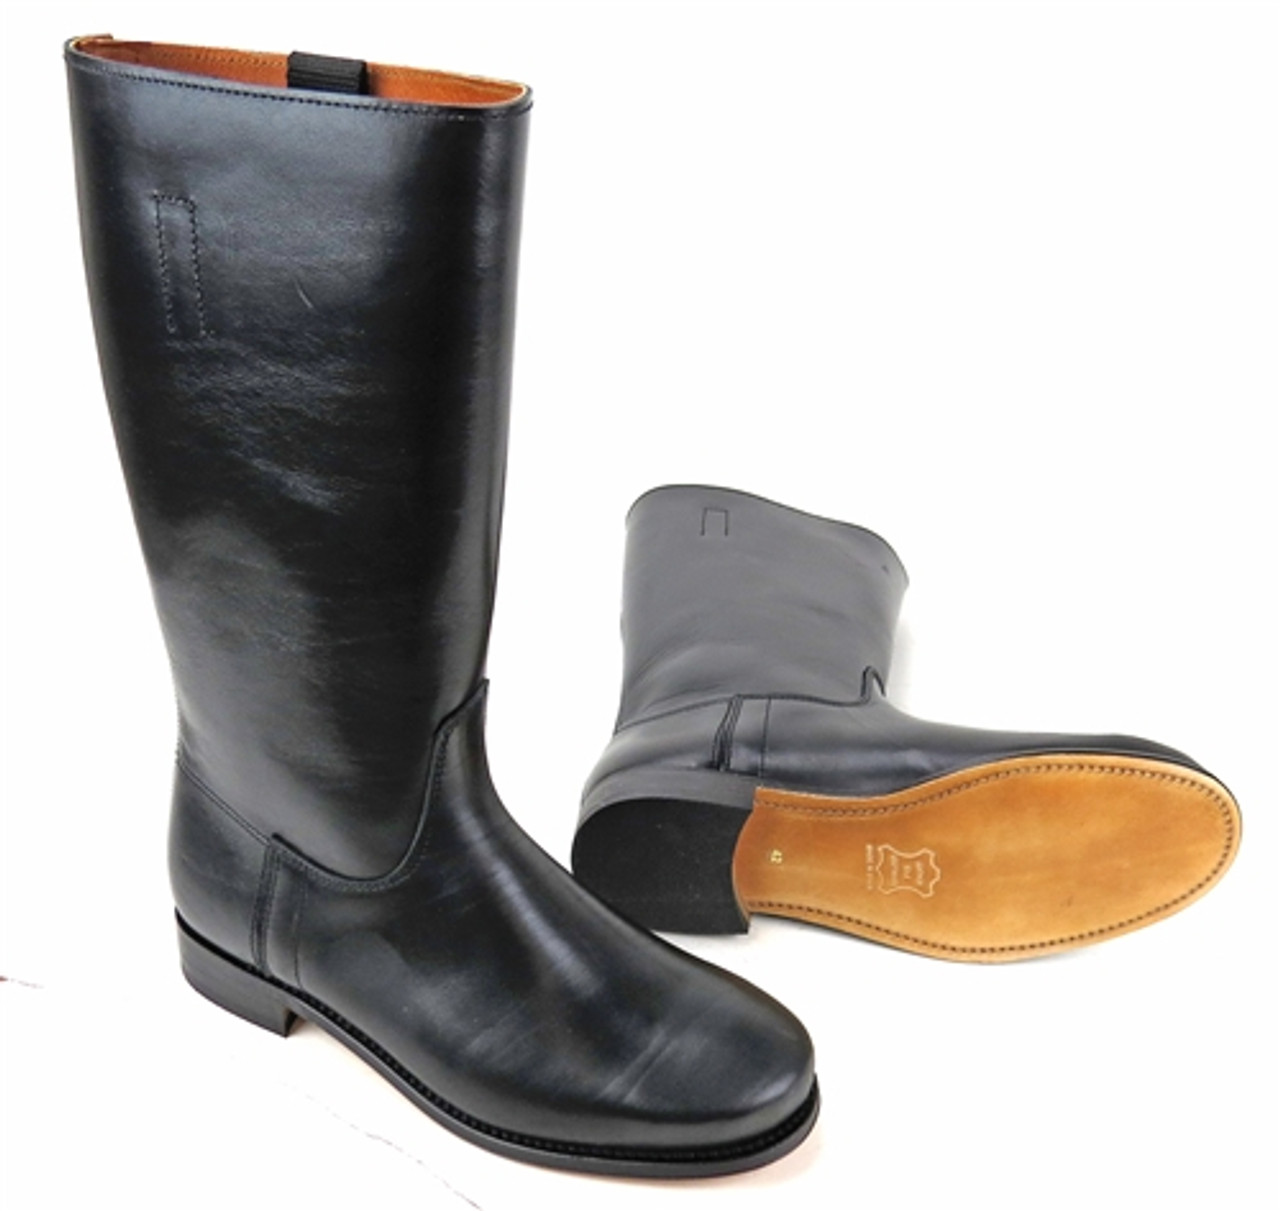 Dress Jack Boots from Hessen Antique